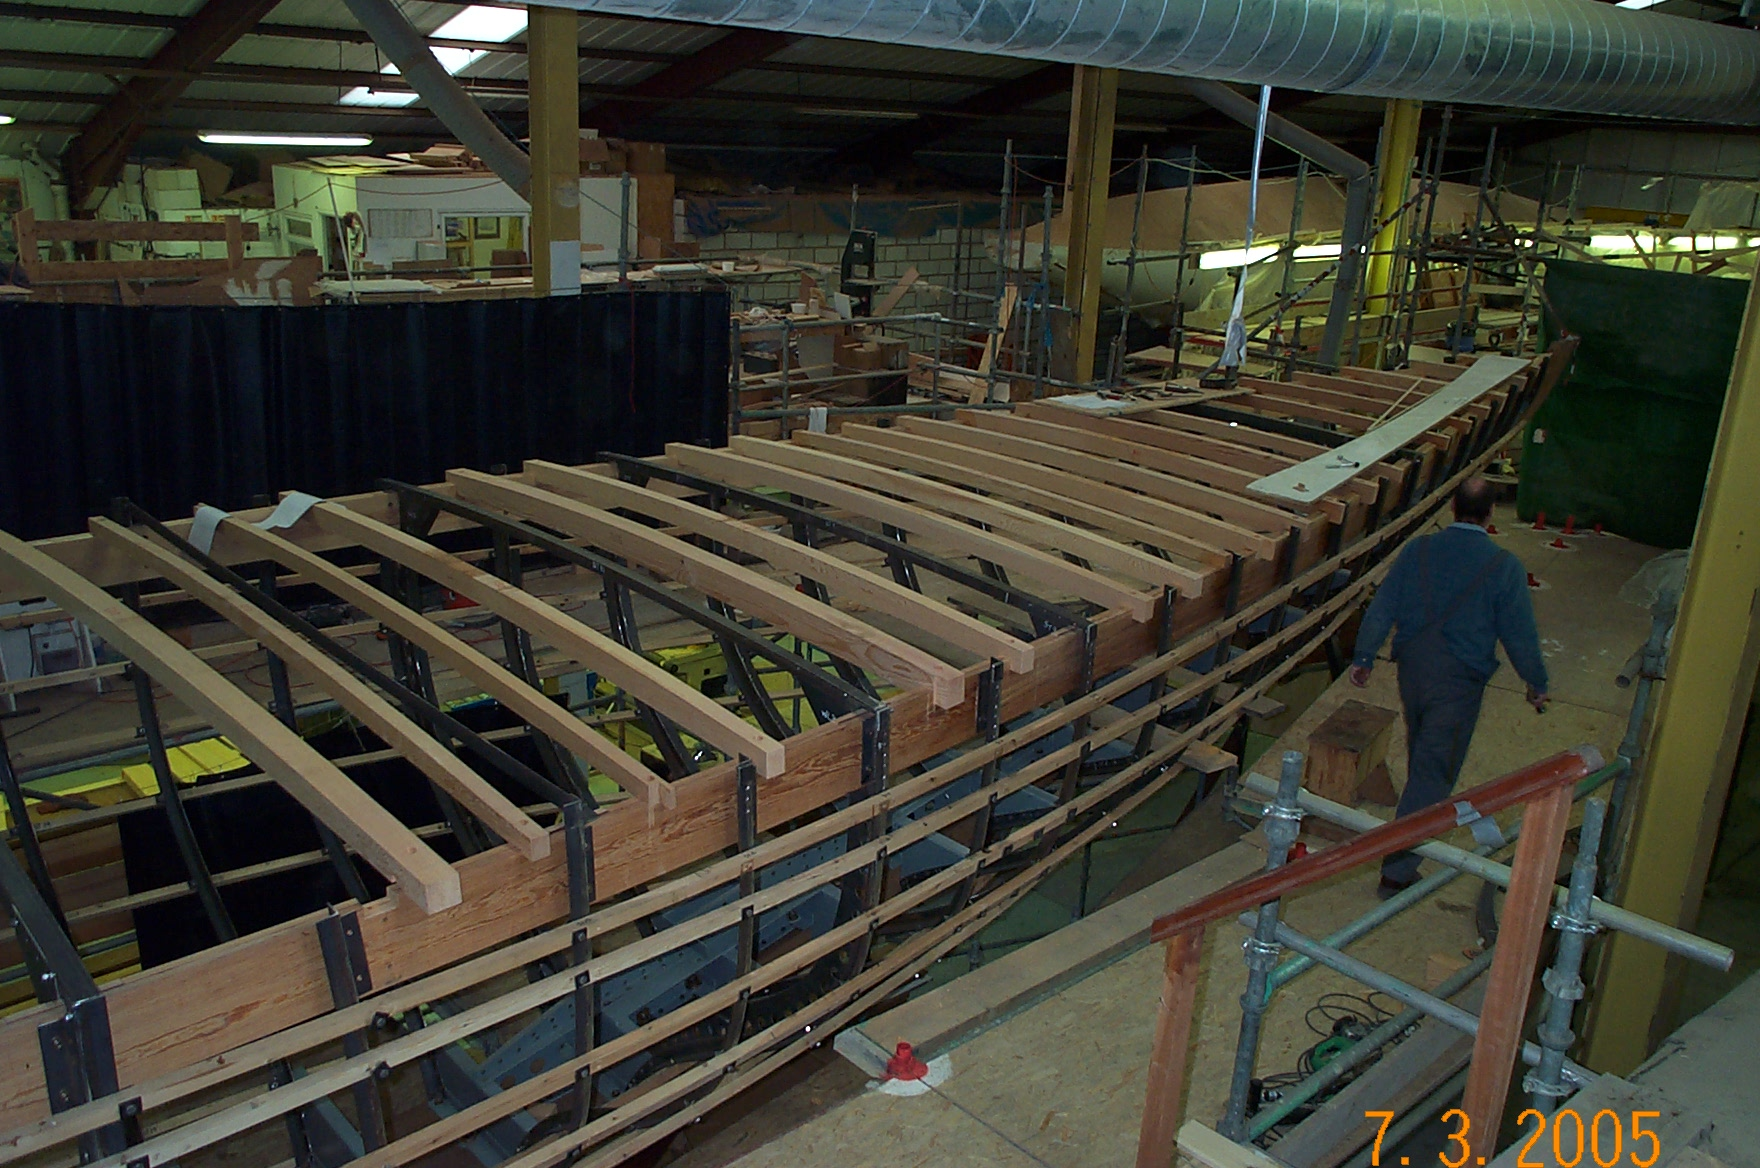 Hispania, designed by William Fife, sister ship to Tuiga, under restoration at Fairlie yachts